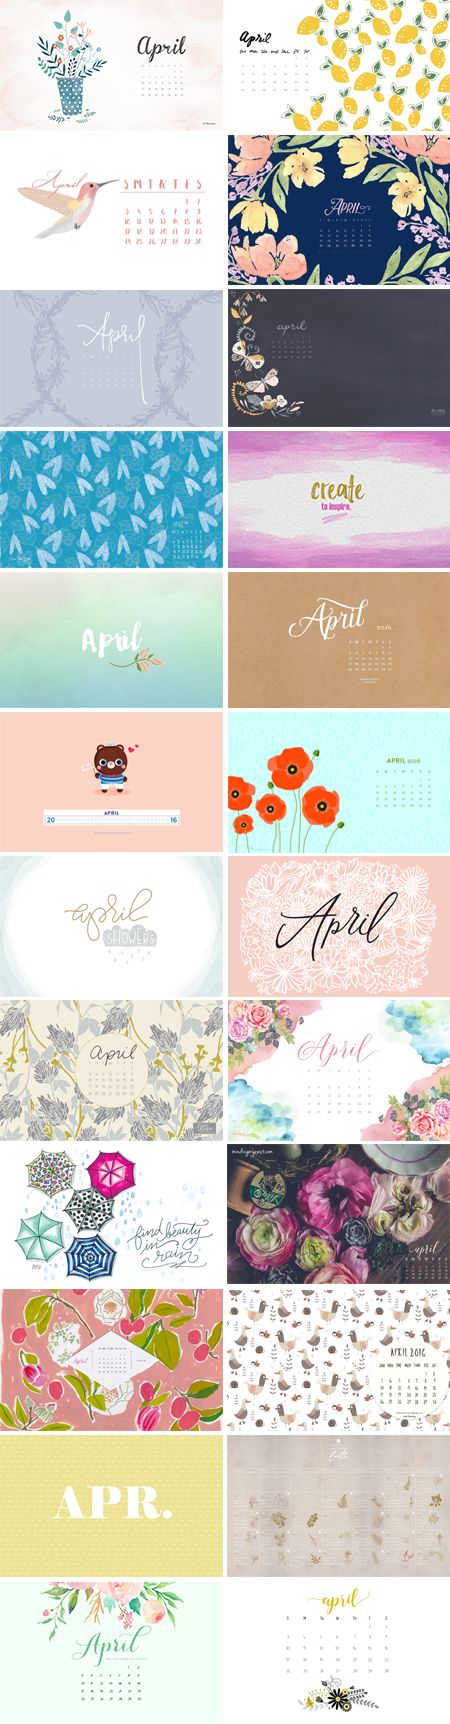 Happy April to you all! It's finally Spring, and I couldn't be happier that winter is behind us! Hope everyone has an amazing month :-) 1. Flipsnack   2. Coco and Mingo   3. Clarabour 4. Blushed Design   5.…